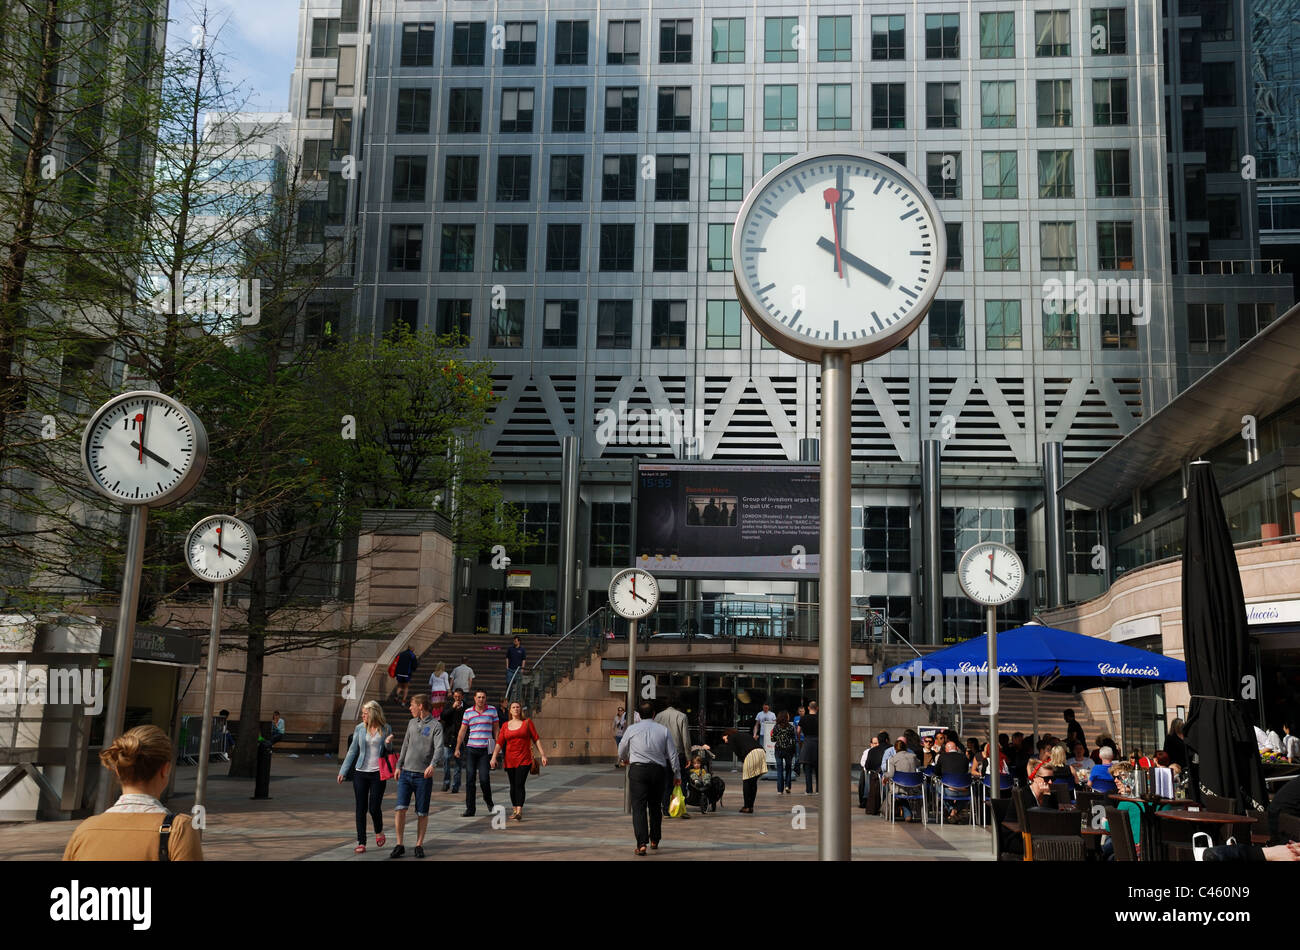 Clocks in front of One Canada Square, Canary Wharf, London, UK. Europe. - Stock Image